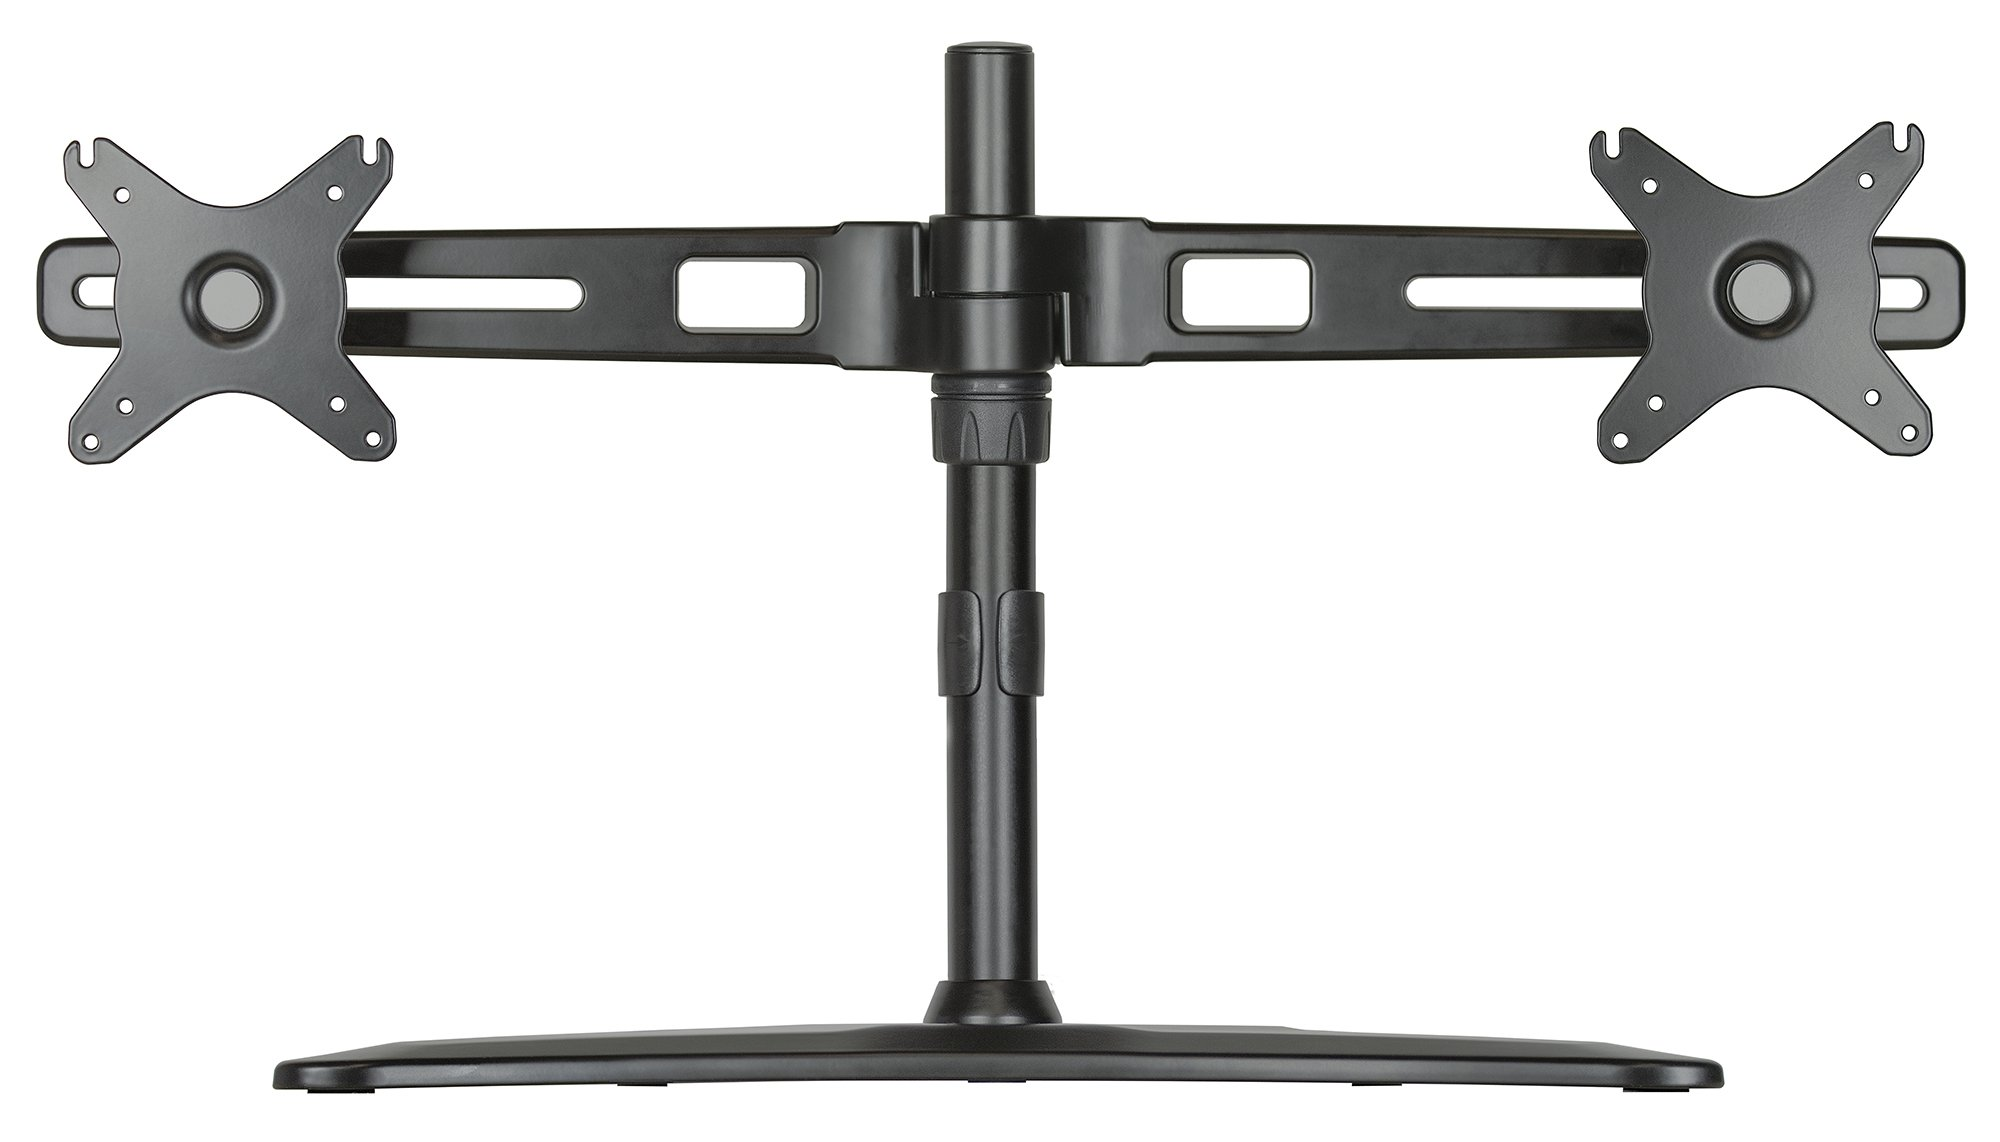 DoubleSight Dual Monitor Easy Stand, Universal Vesa Mount, Free Standing, Fully Adjustable Height, Tilt, Pivot, accomodates up to 27'' LED LCD Monitors, VESA Bracket 75mm & 100mm, (model: DS-227STN) by DoubleSight Displays